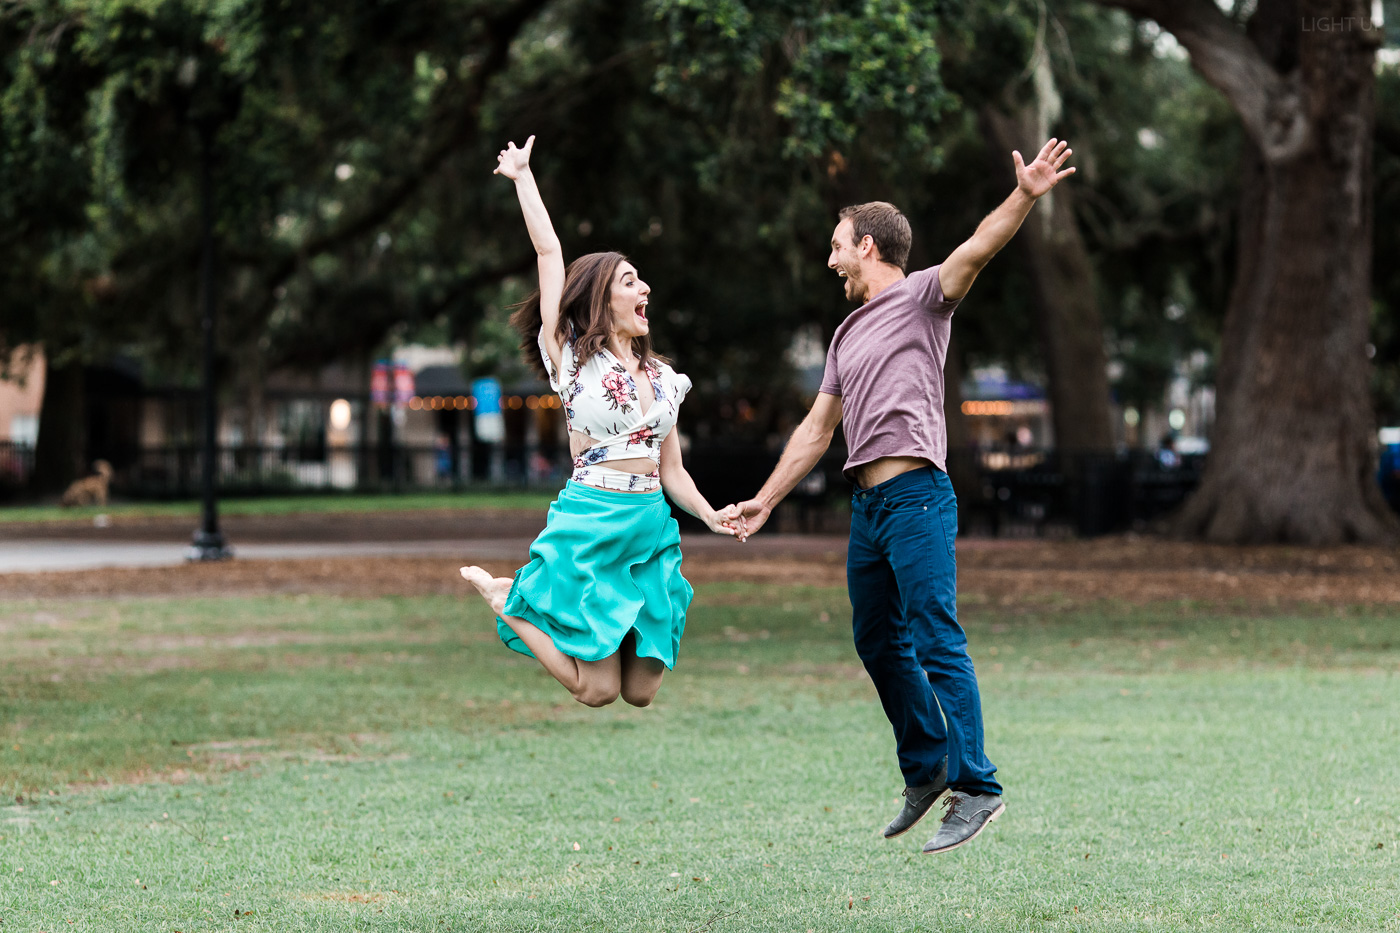 fun-engagement-photo-ideas-2.jpg